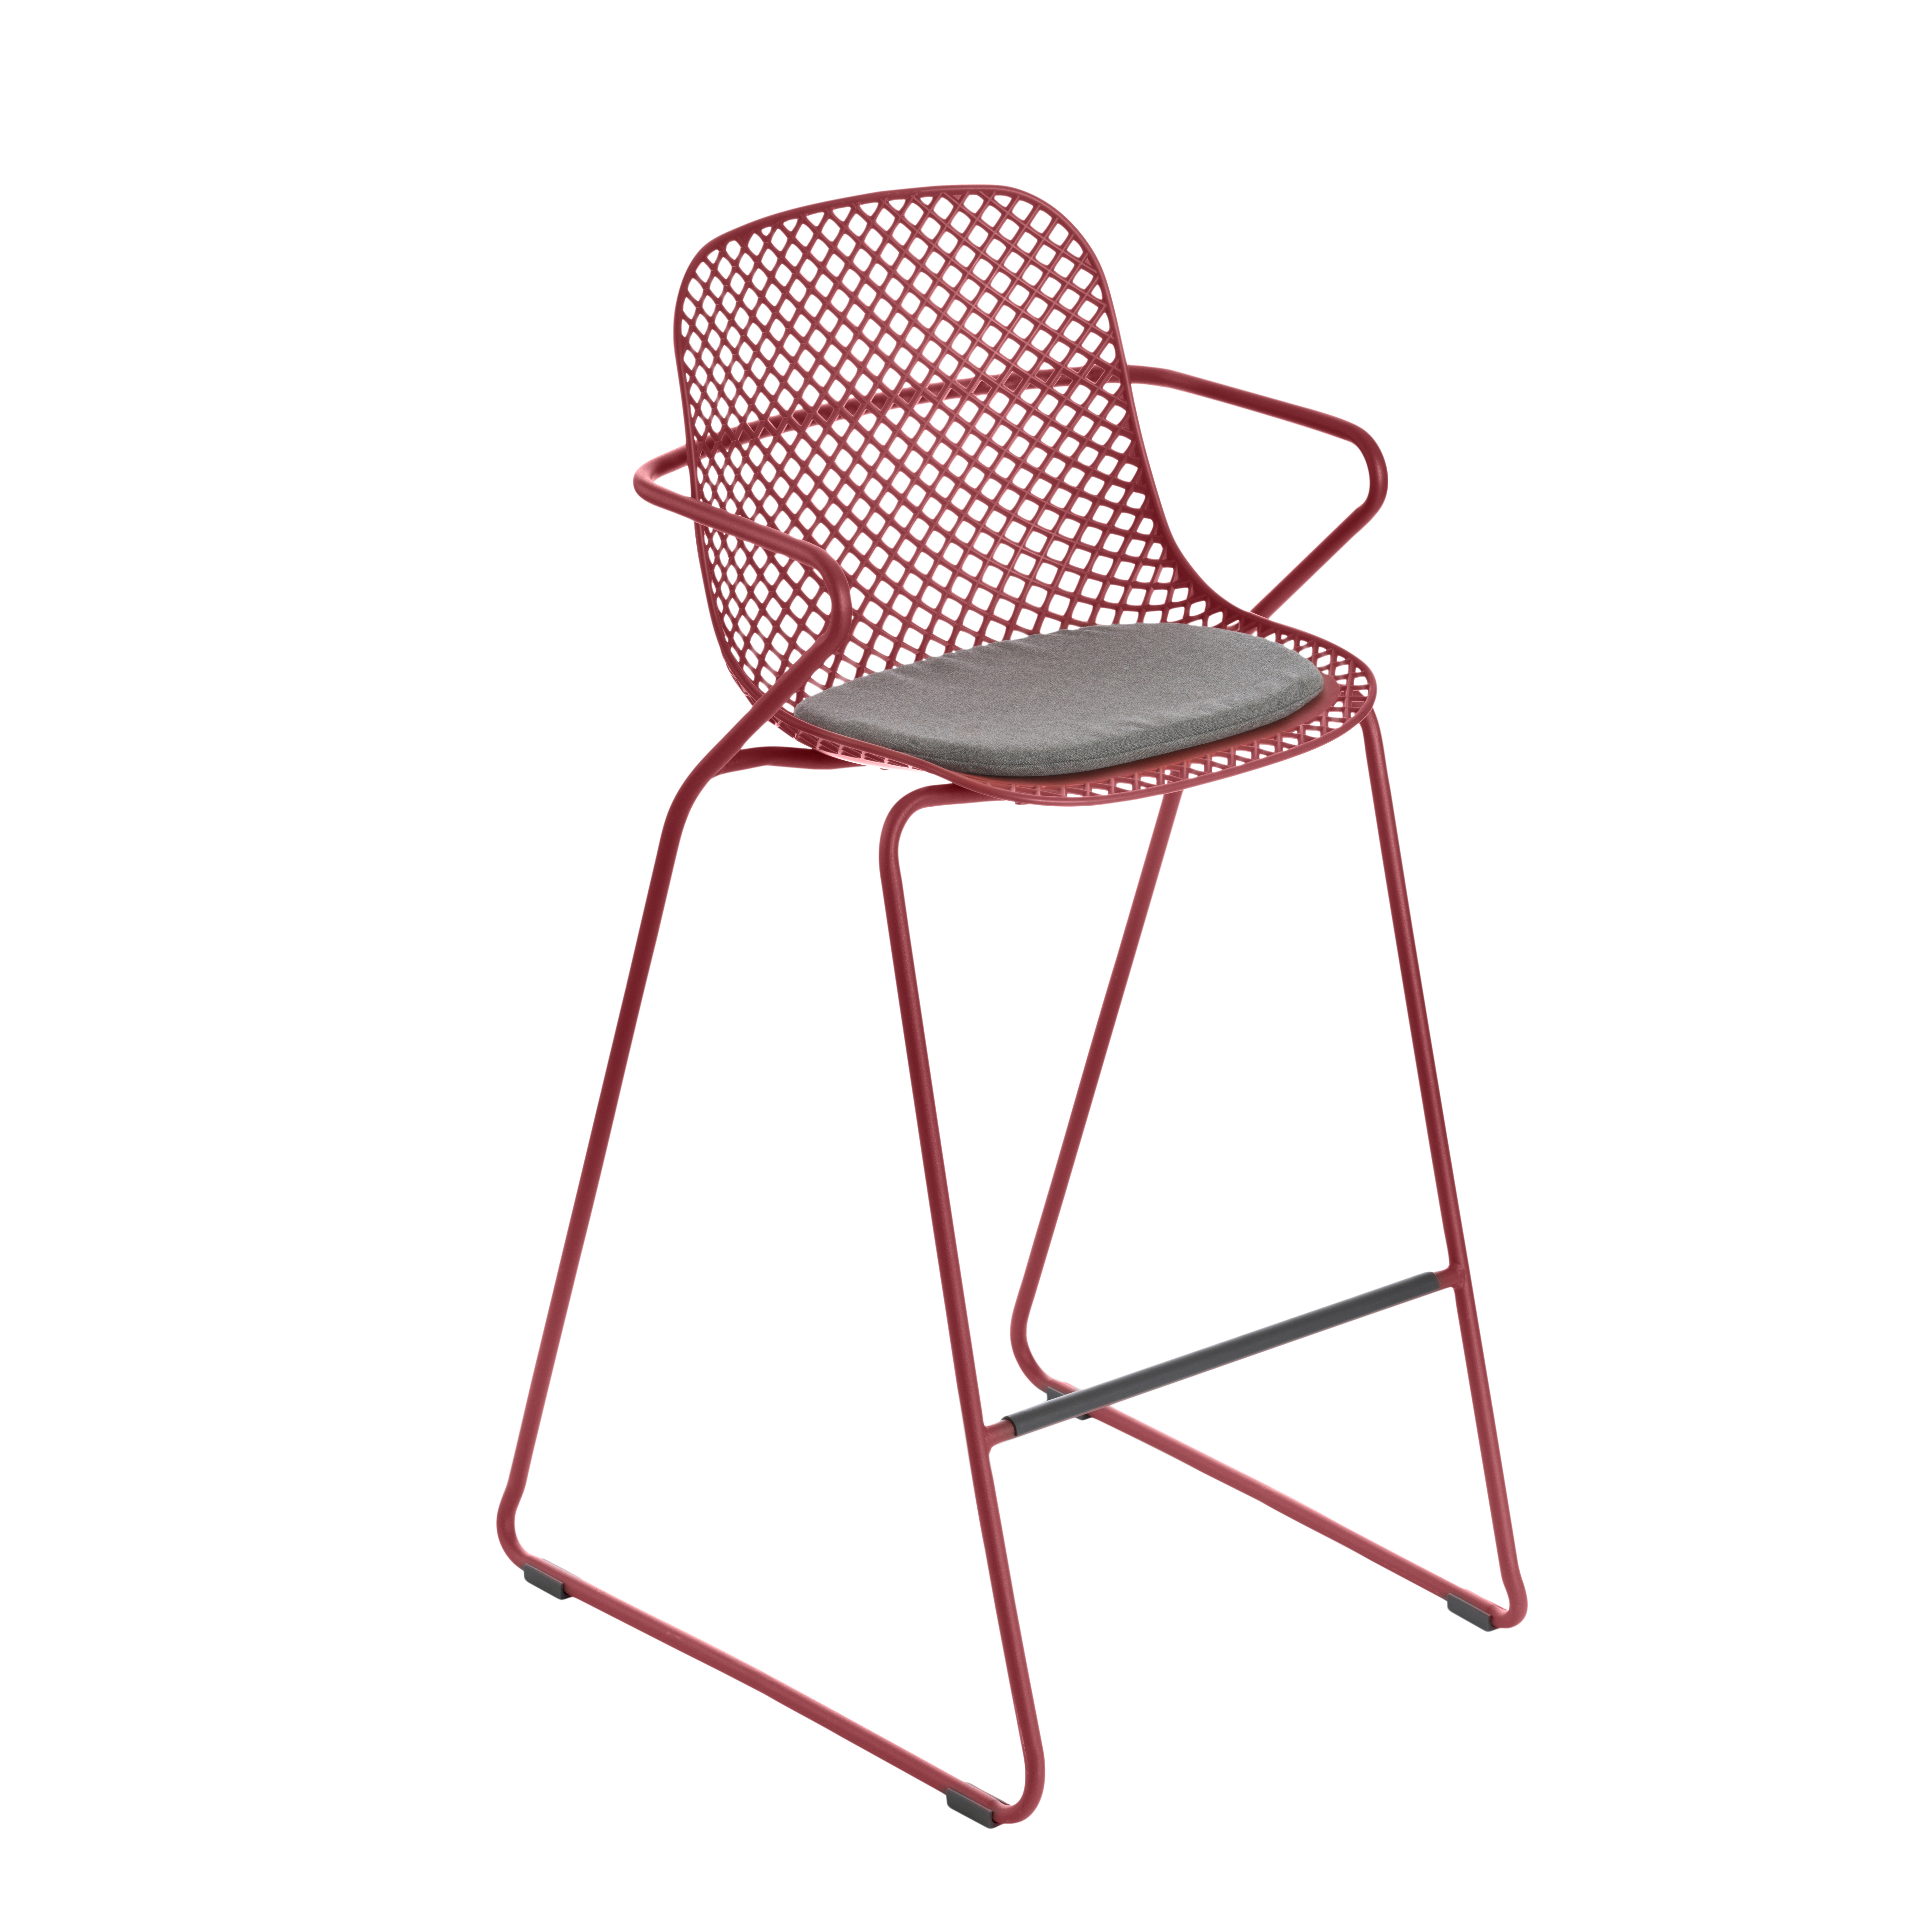 Grosfillex US139712 bar stool, stacking, outdoor